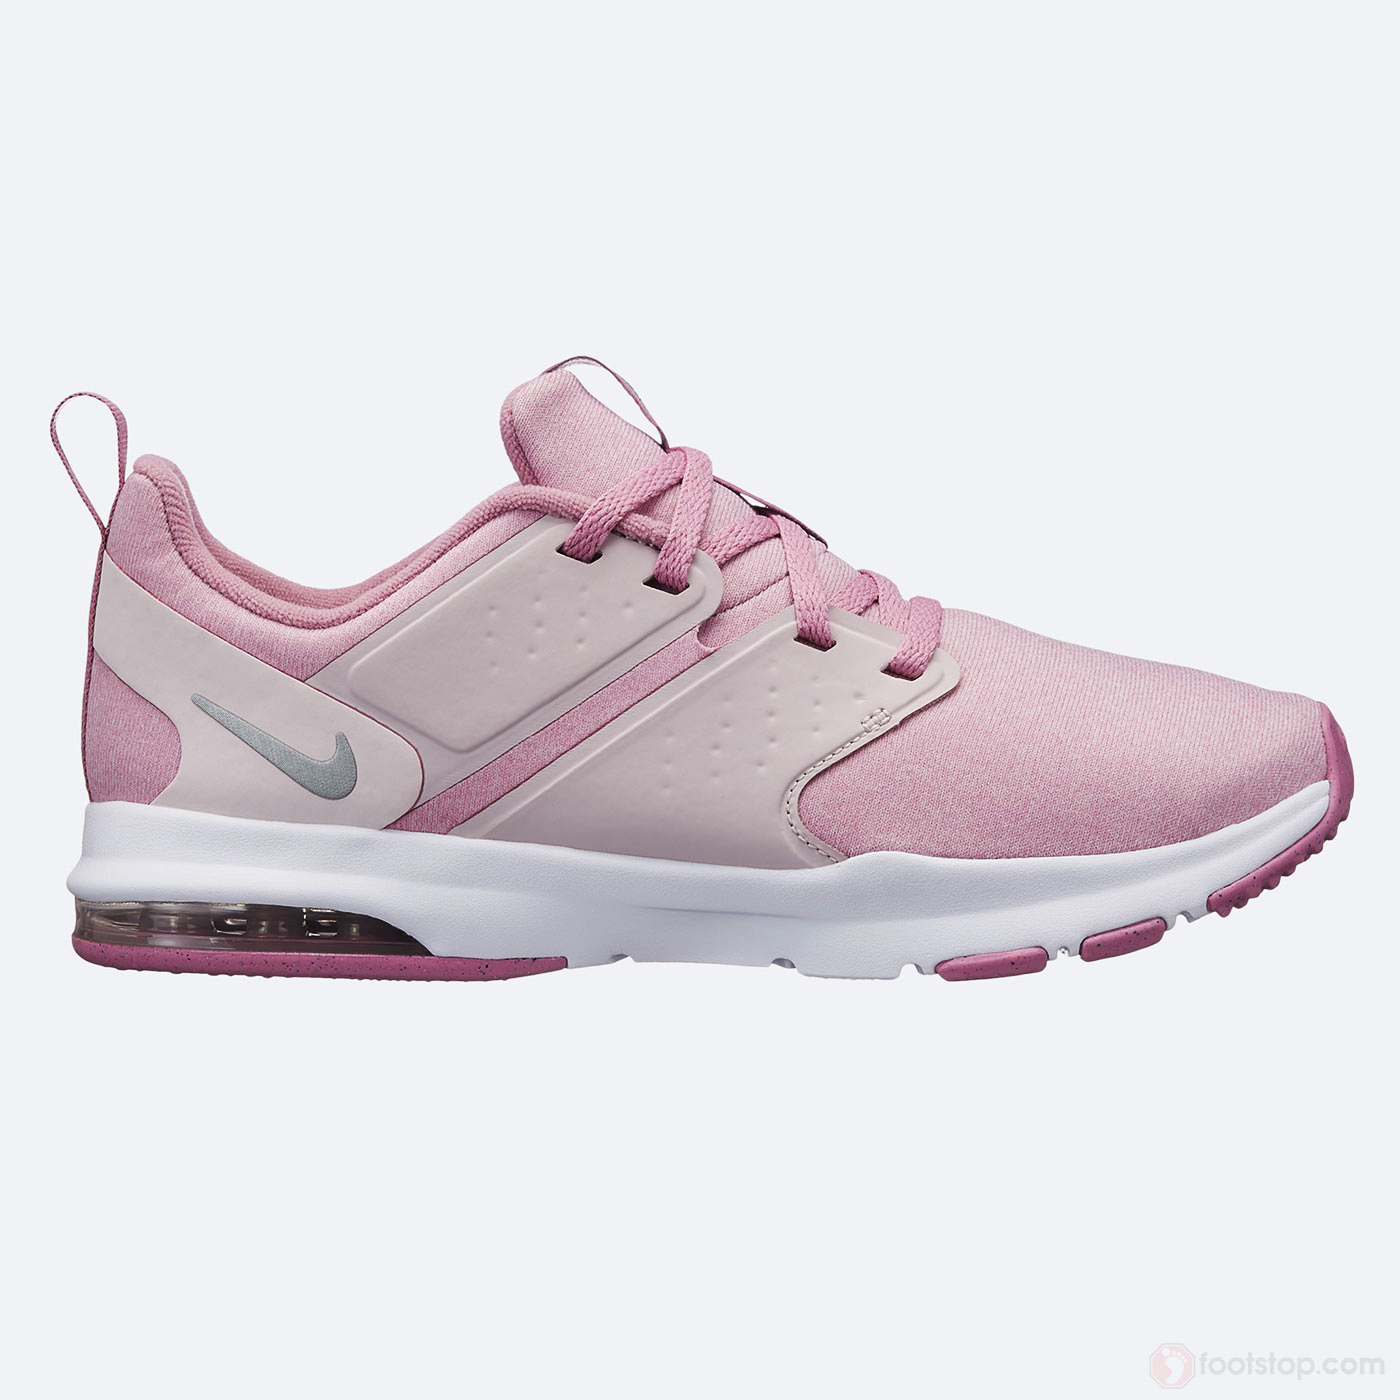 ad2fb1f09cd Home Mujer Zapatillas de training mujer. Nike wmns Nike air bella tr ...